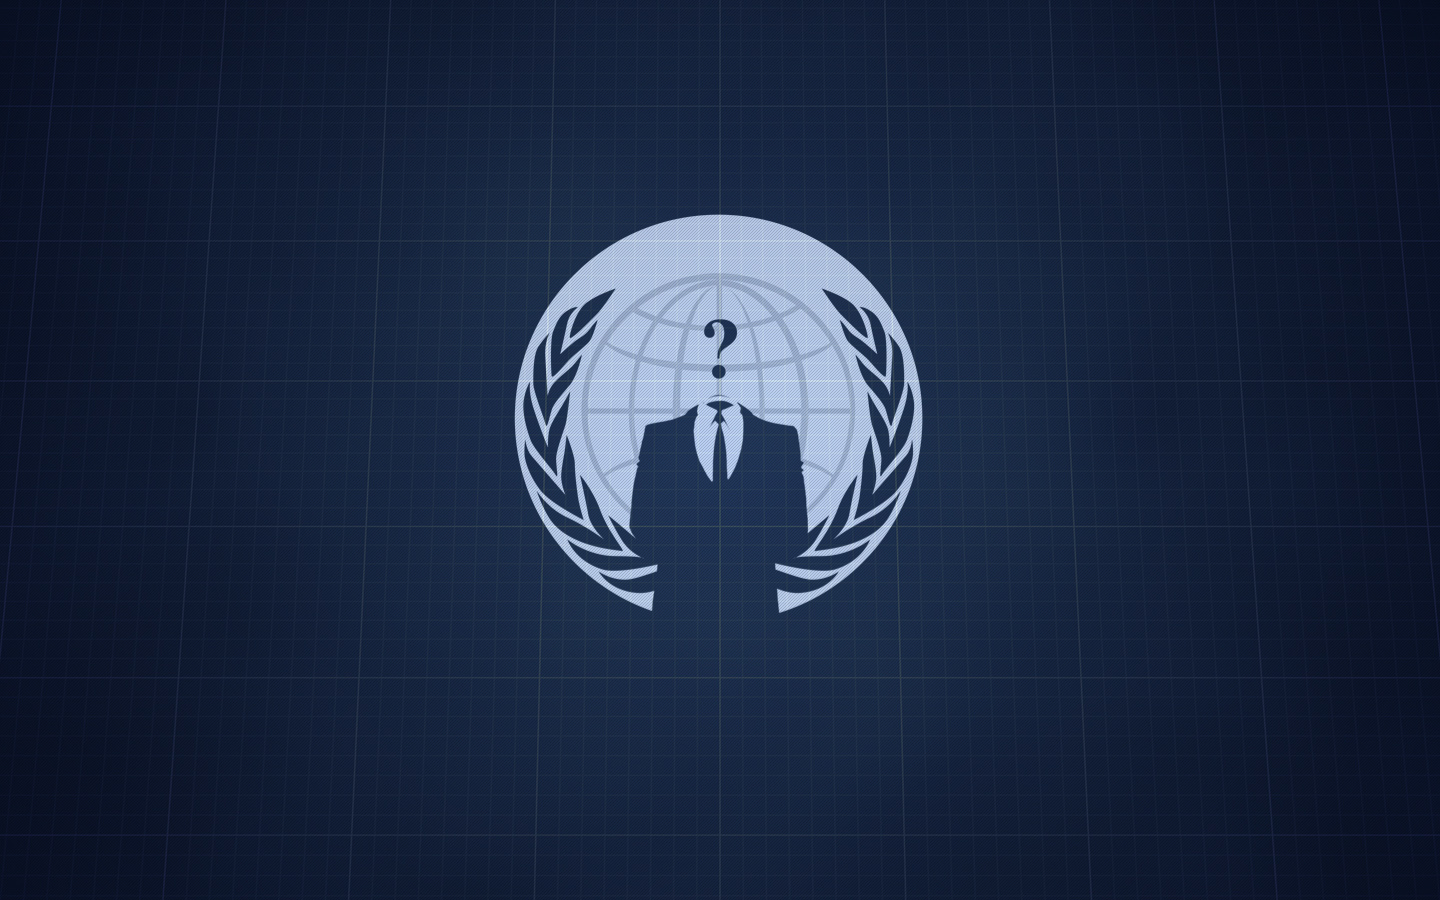 wallpapers de anonymous HD   Taringa 1440x900